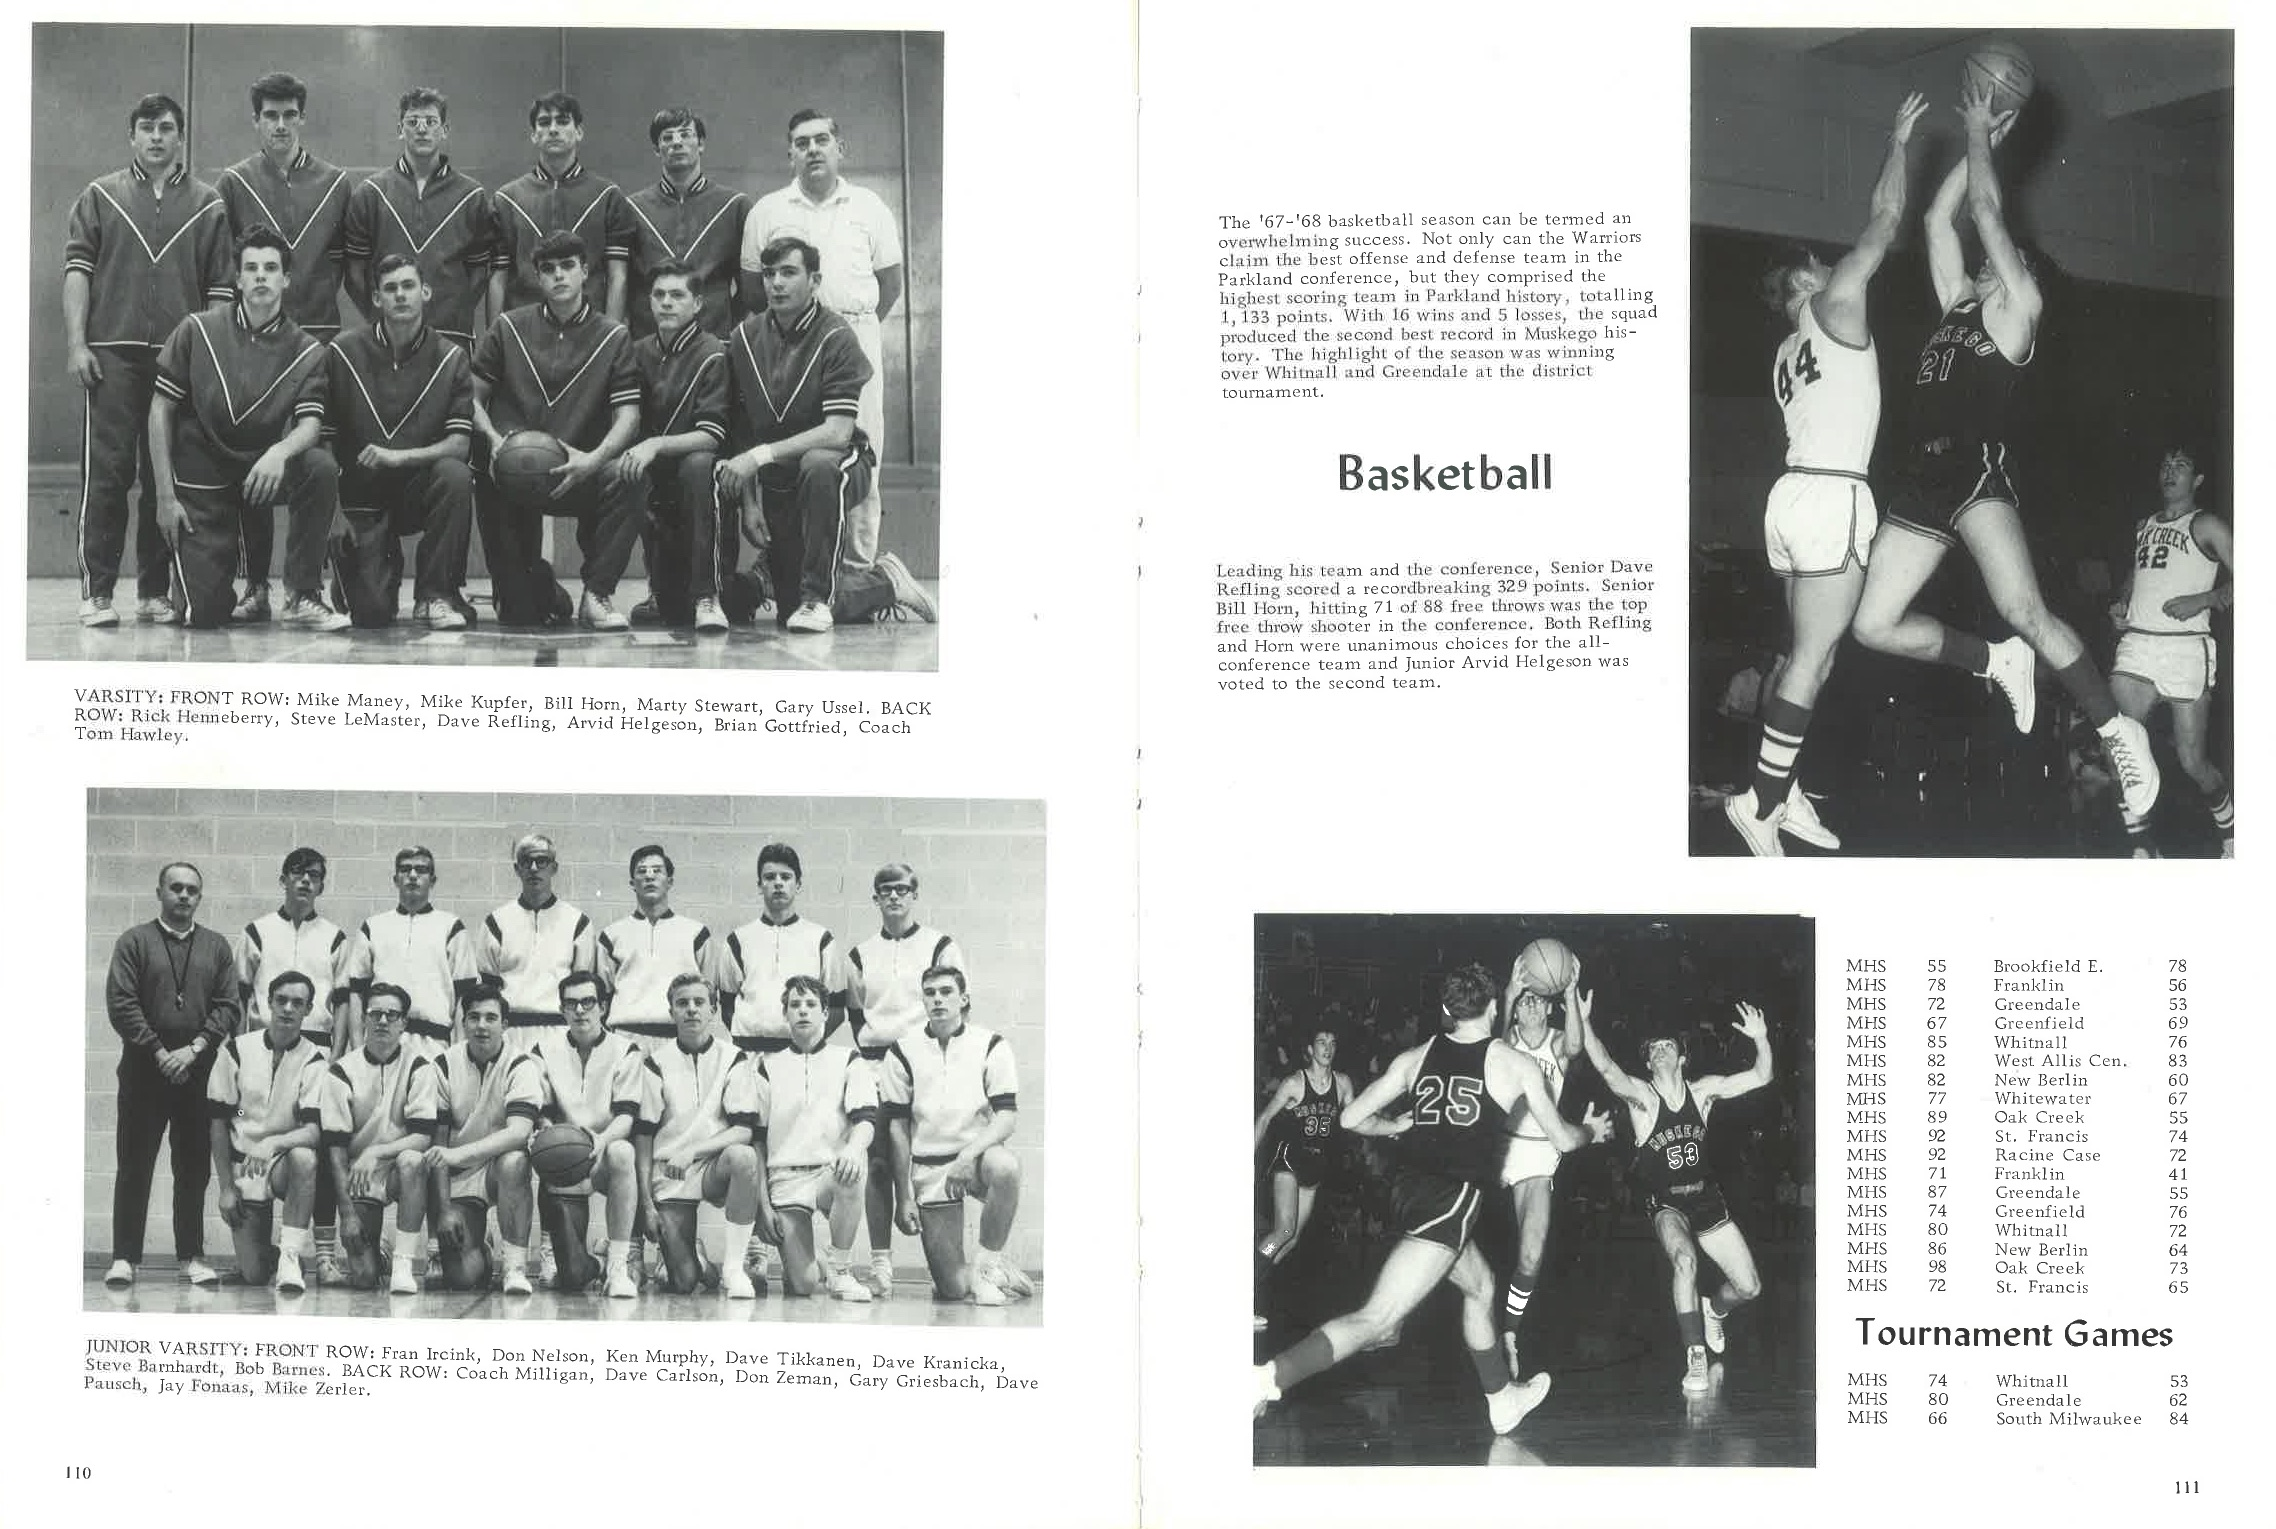 1968_Yearbook_56.jpg